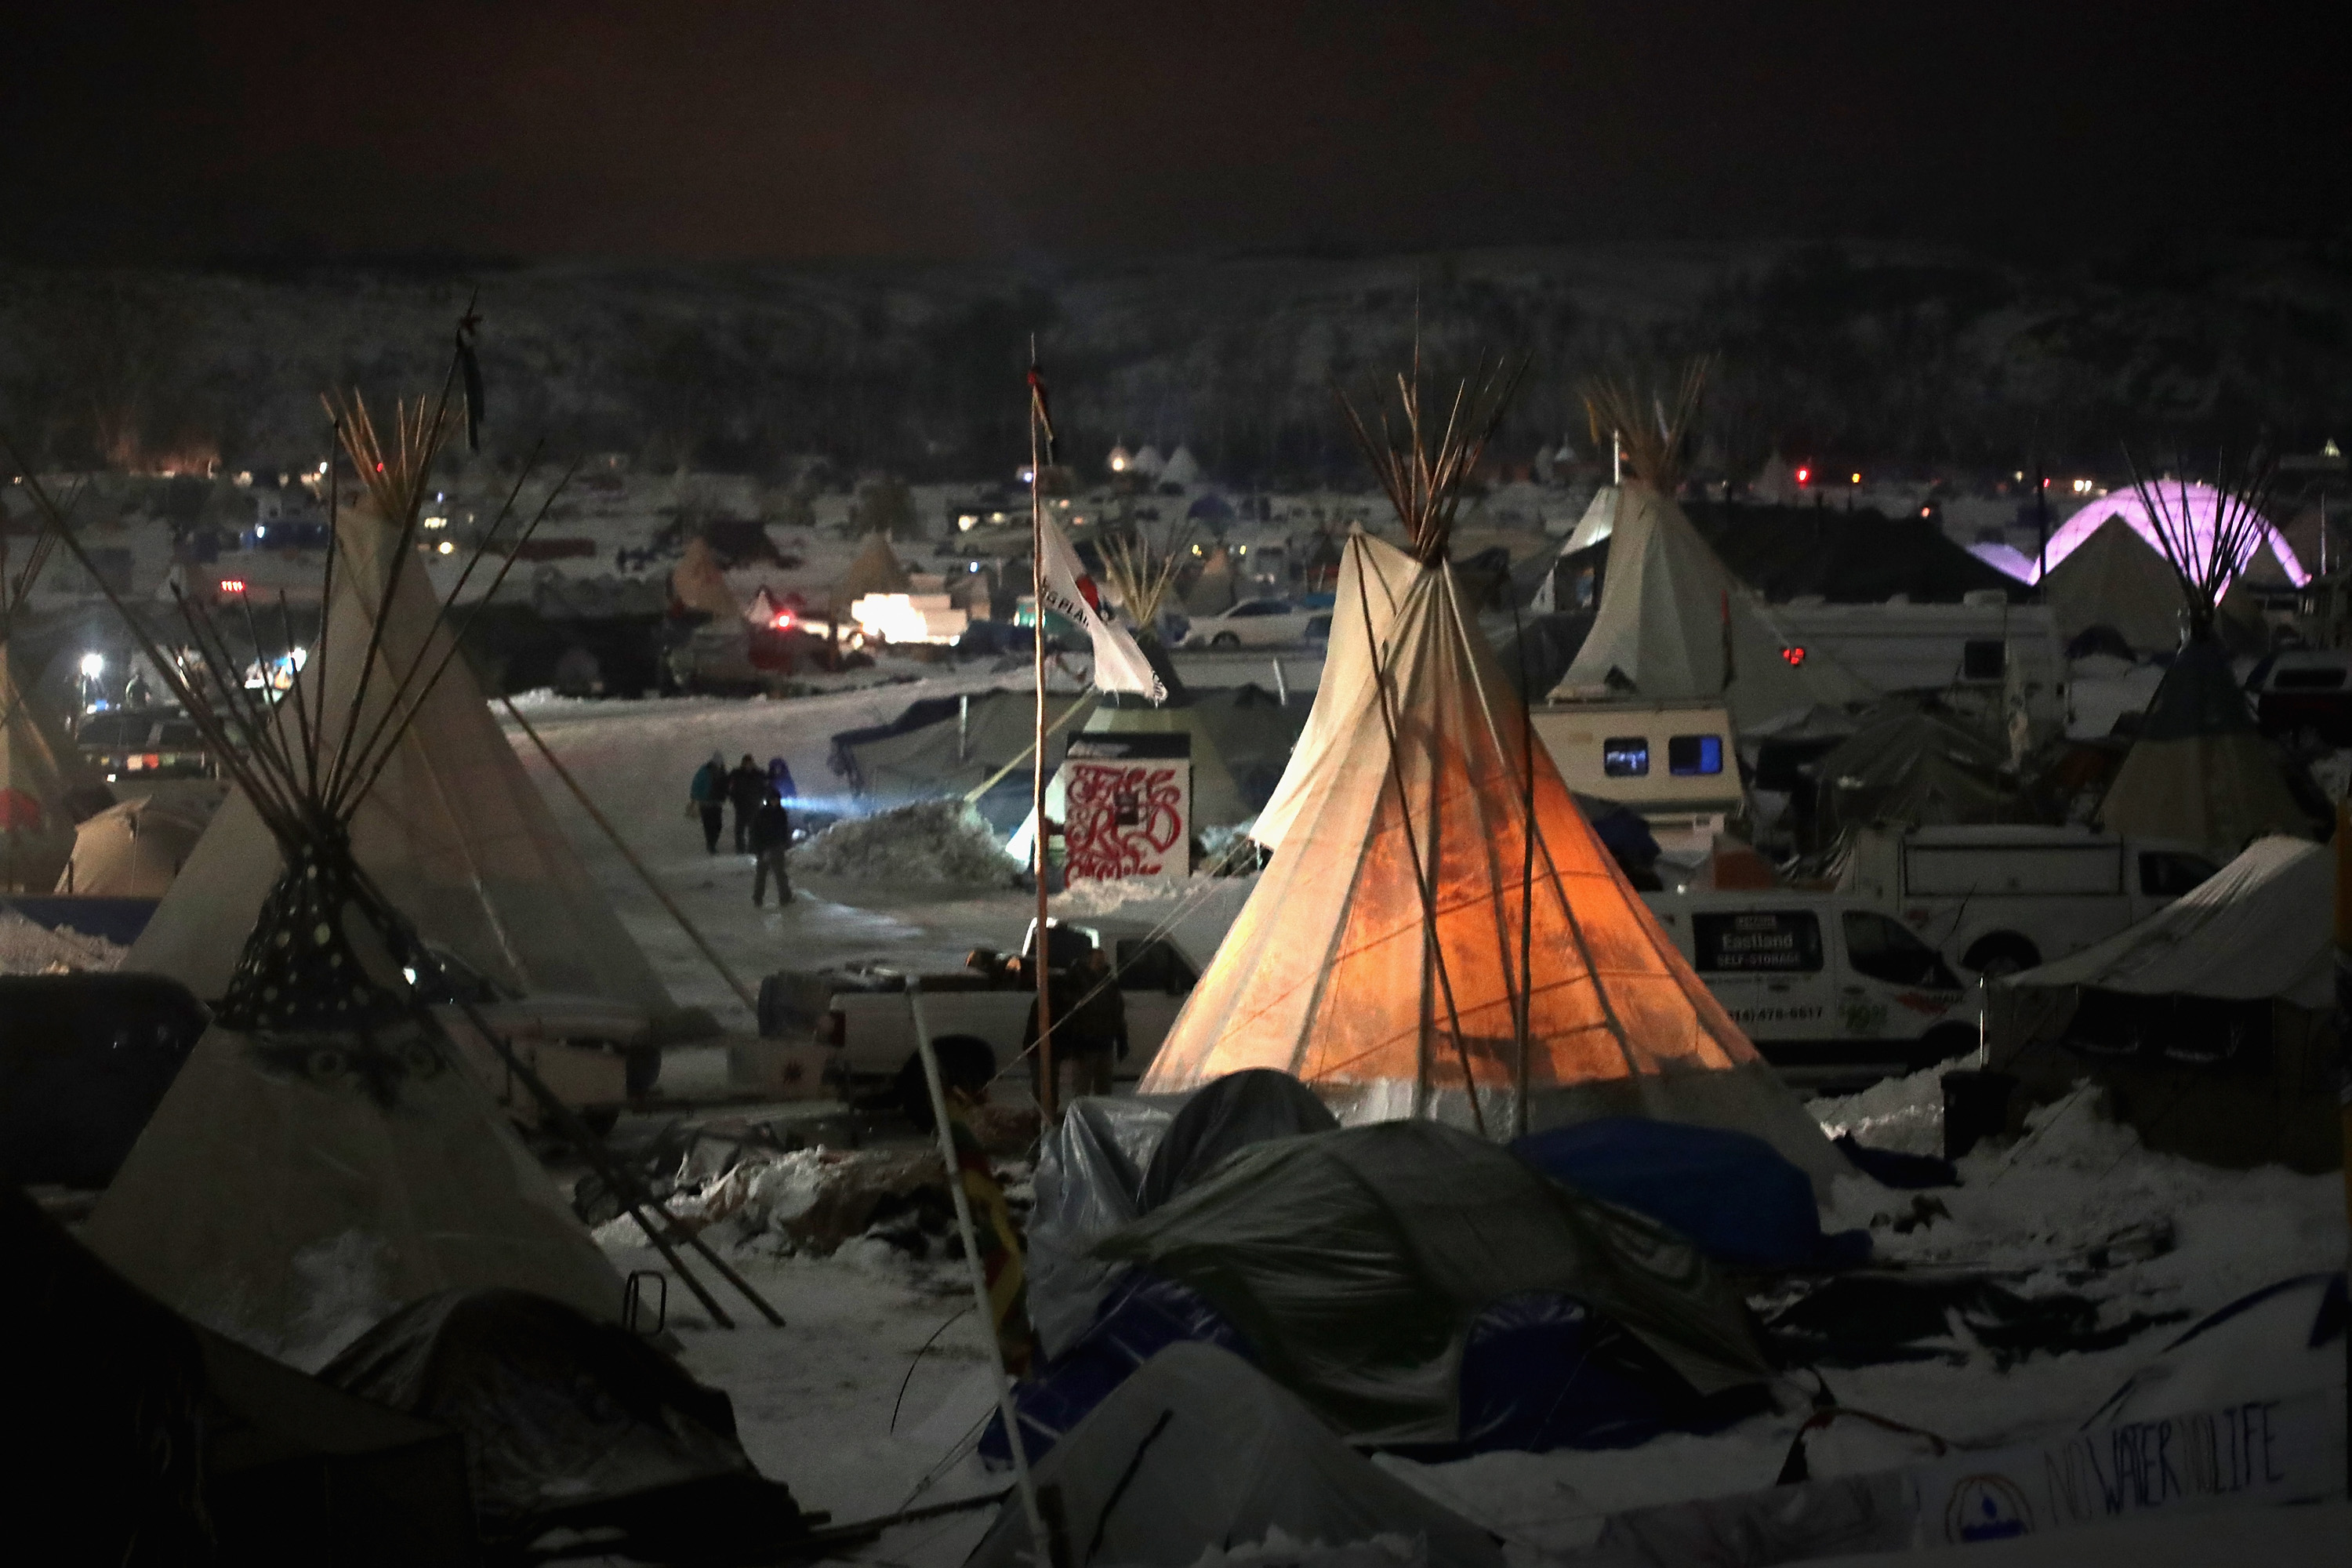 CANNON BALL, ND - DECEMBER 01:  Night falls on Oceti Sakowin Camp on the edge of the Standing Rock Sioux Reservation on December 1, 2016 outside Cannon Ball, North Dakota. Native Americans and activists from around the country have been gathering at the camp for several months trying to halt the construction of the Dakota Access Pipeline. The proposed 1,172-mile-long pipeline would transport oil from the North Dakota Bakken region through South Dakota, Iowa and into Illinois.  (Photo by Scott Olson/Getty Images)